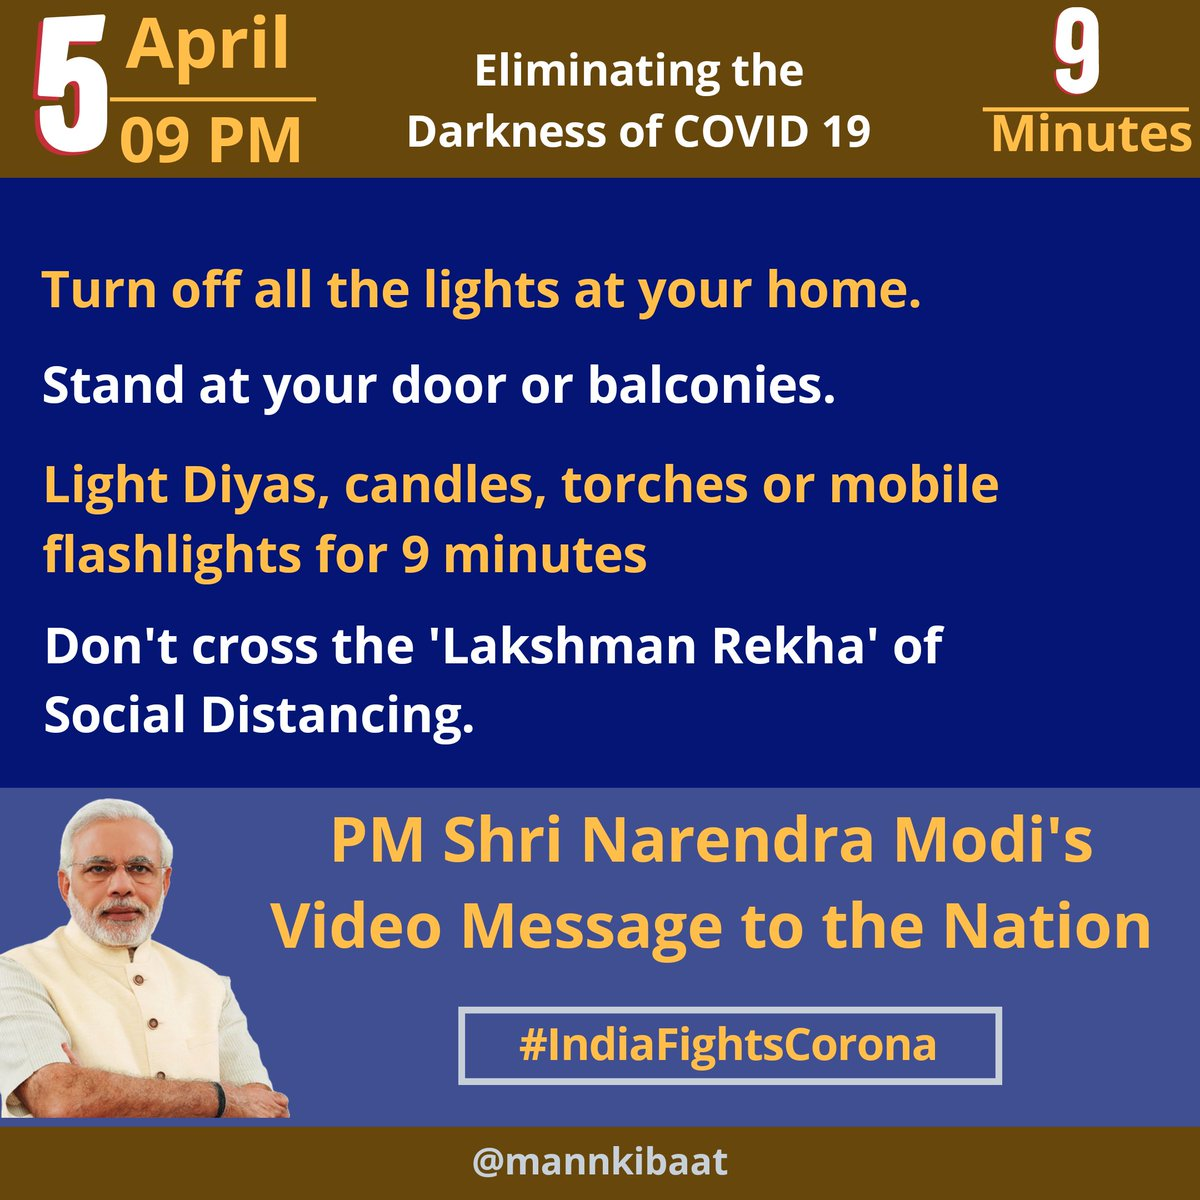 #9pm9minute   Turn off all the lights at your home.  Stand at your door or balconies.  Light Diyas, candles, torches or mobile flashlights for 9 minutes.  Don't cross the'Lakshman Rekha'of Social Distancing.  #IndiaFightsCorona<br>http://pic.twitter.com/dNkM2Kjs2M